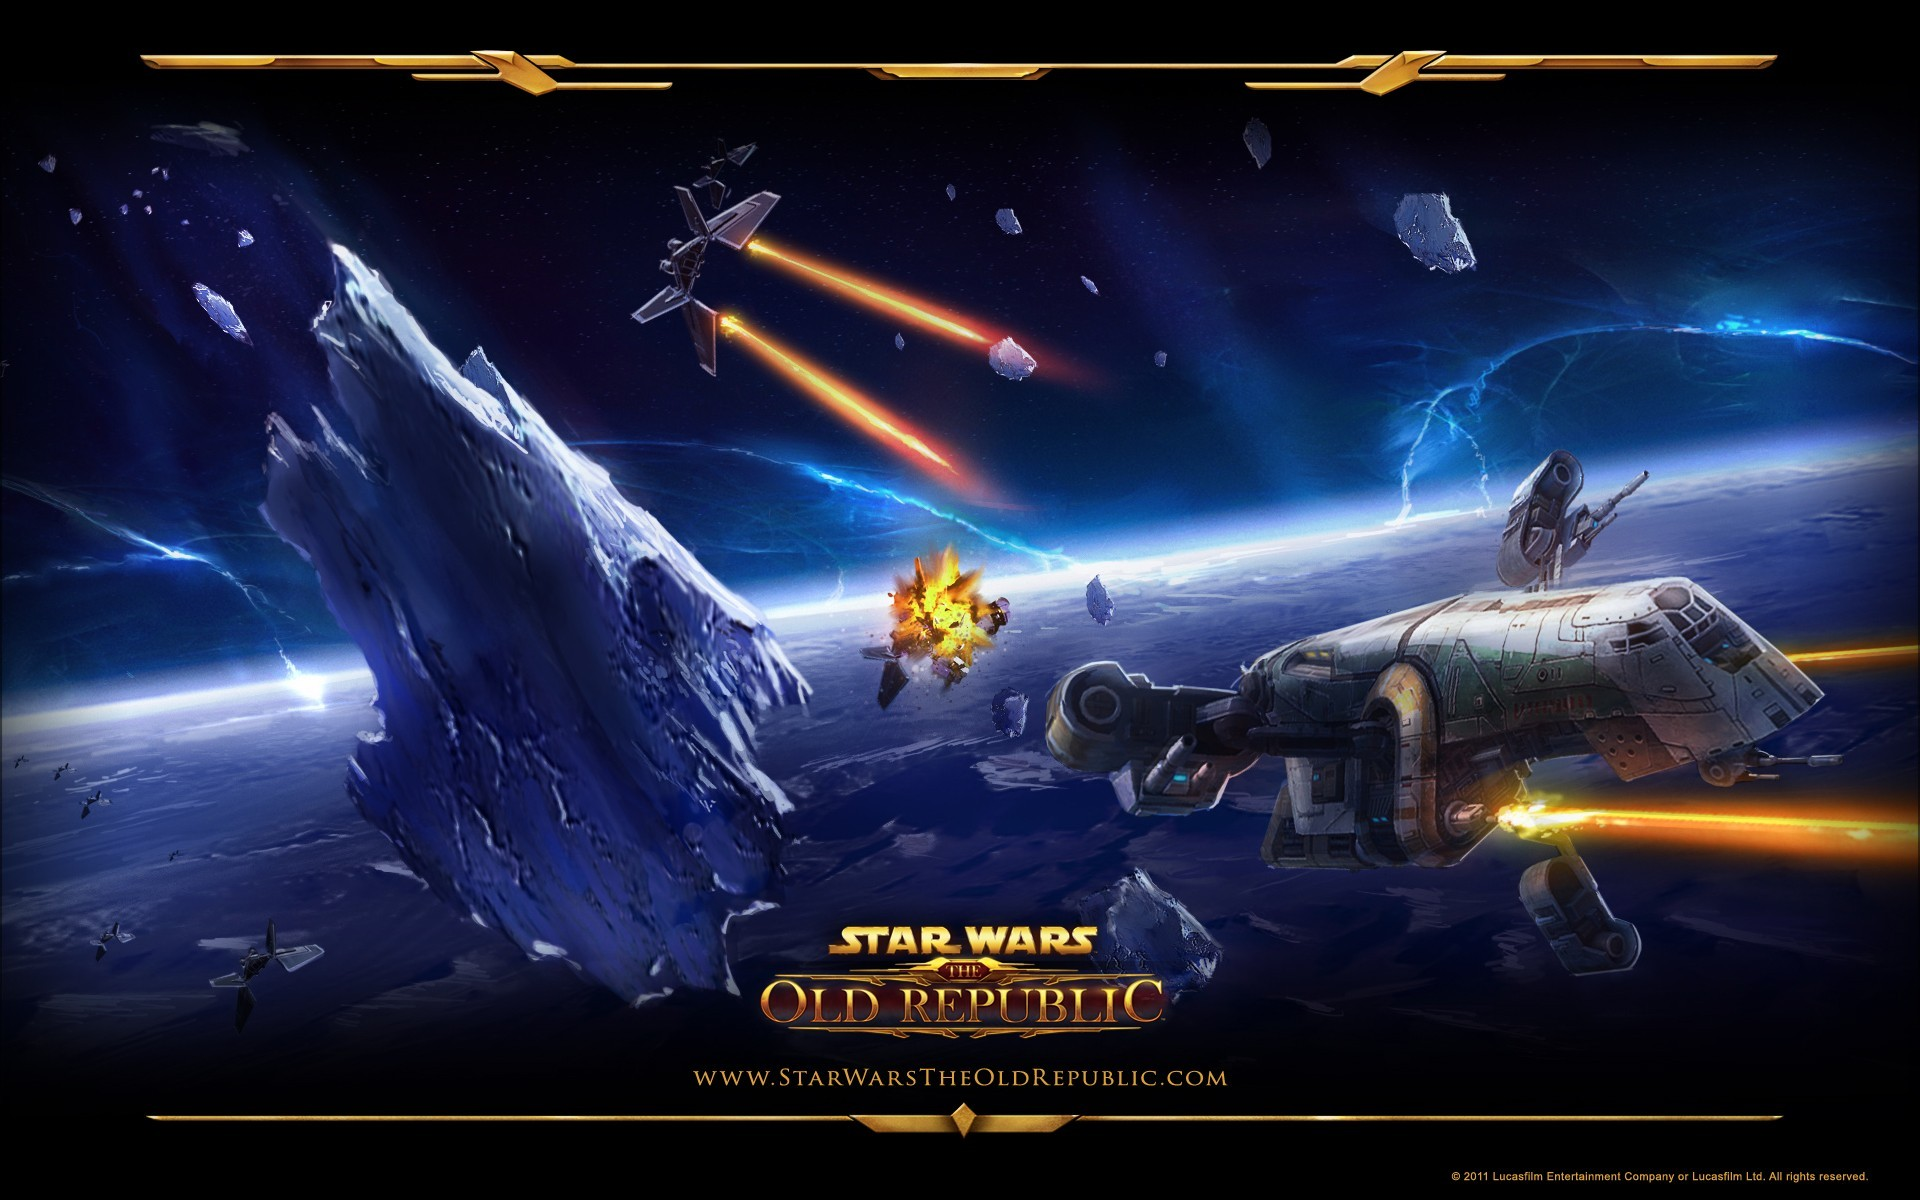 Star Wars The Old Republic Wallpaper Star Wars The Old Republic